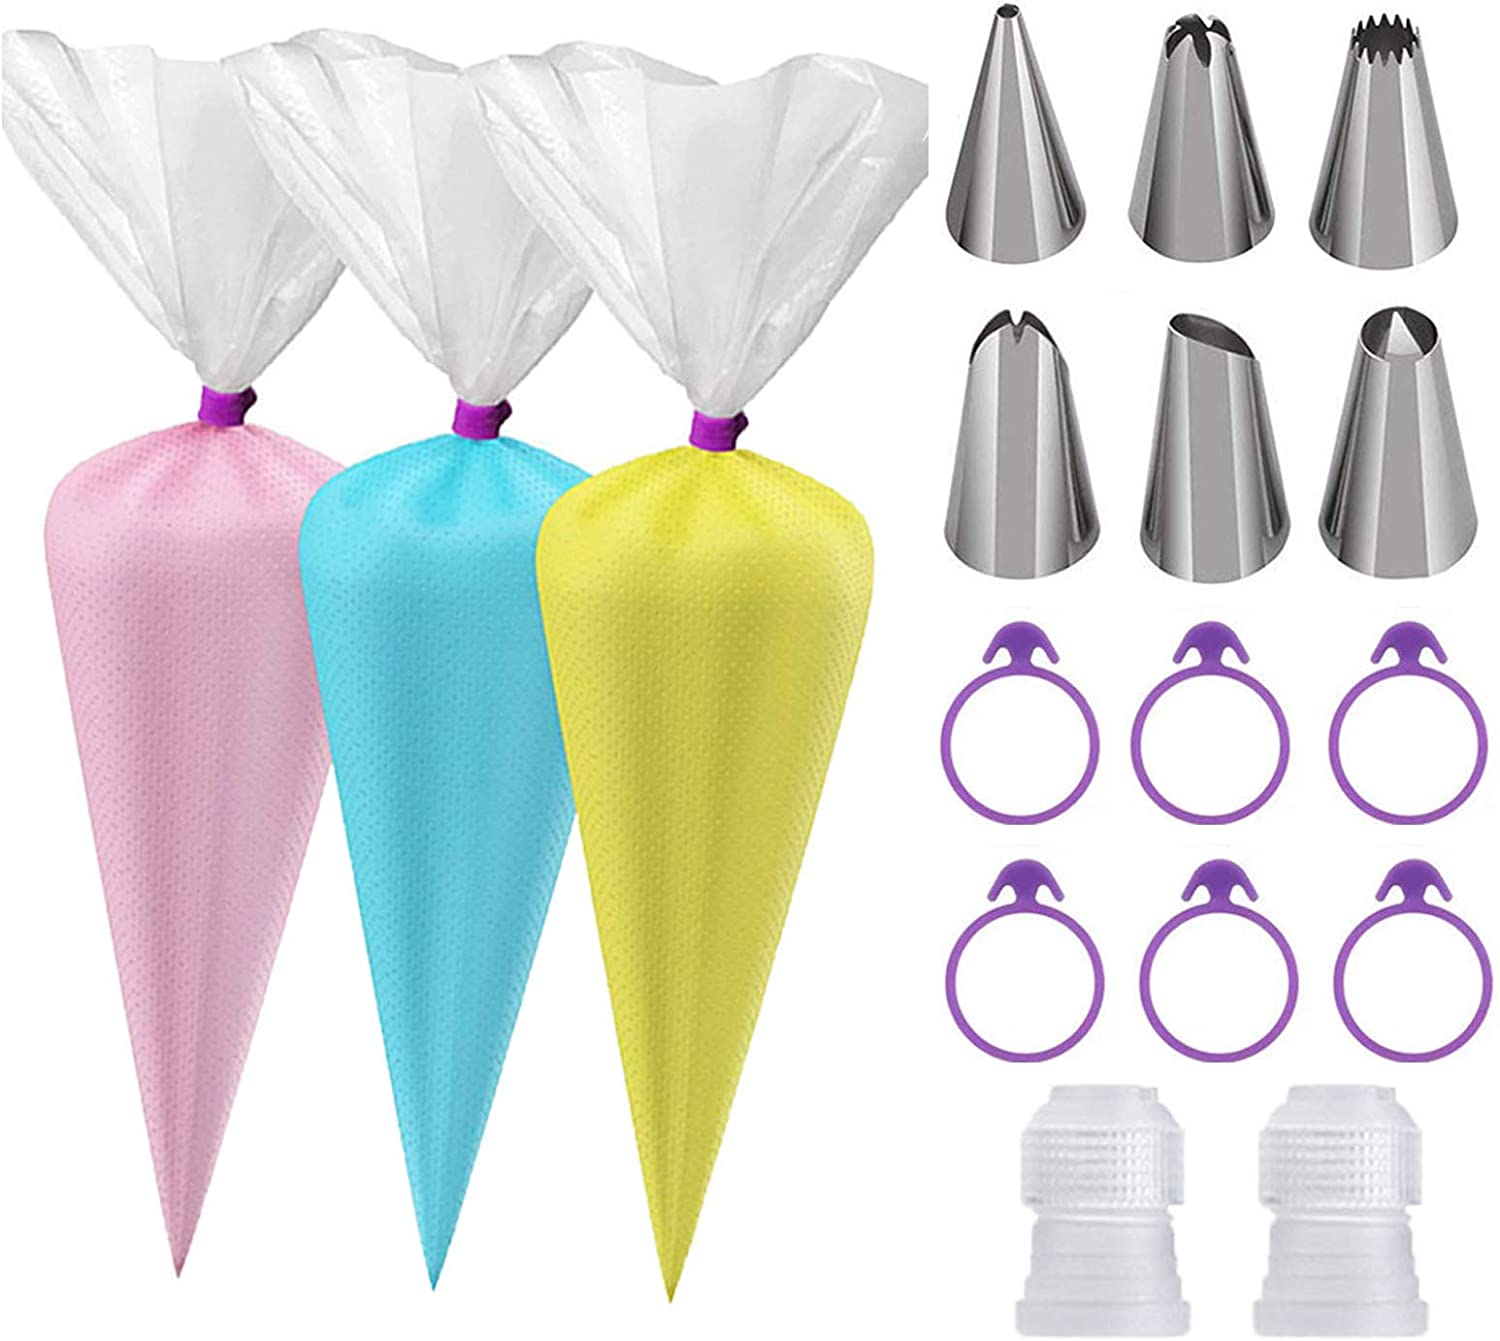 100Pcs 12 Inch Pastry Bags Disposable, Pastry Piping Bags and Tips Disposable, Large Disposable Icing Bags